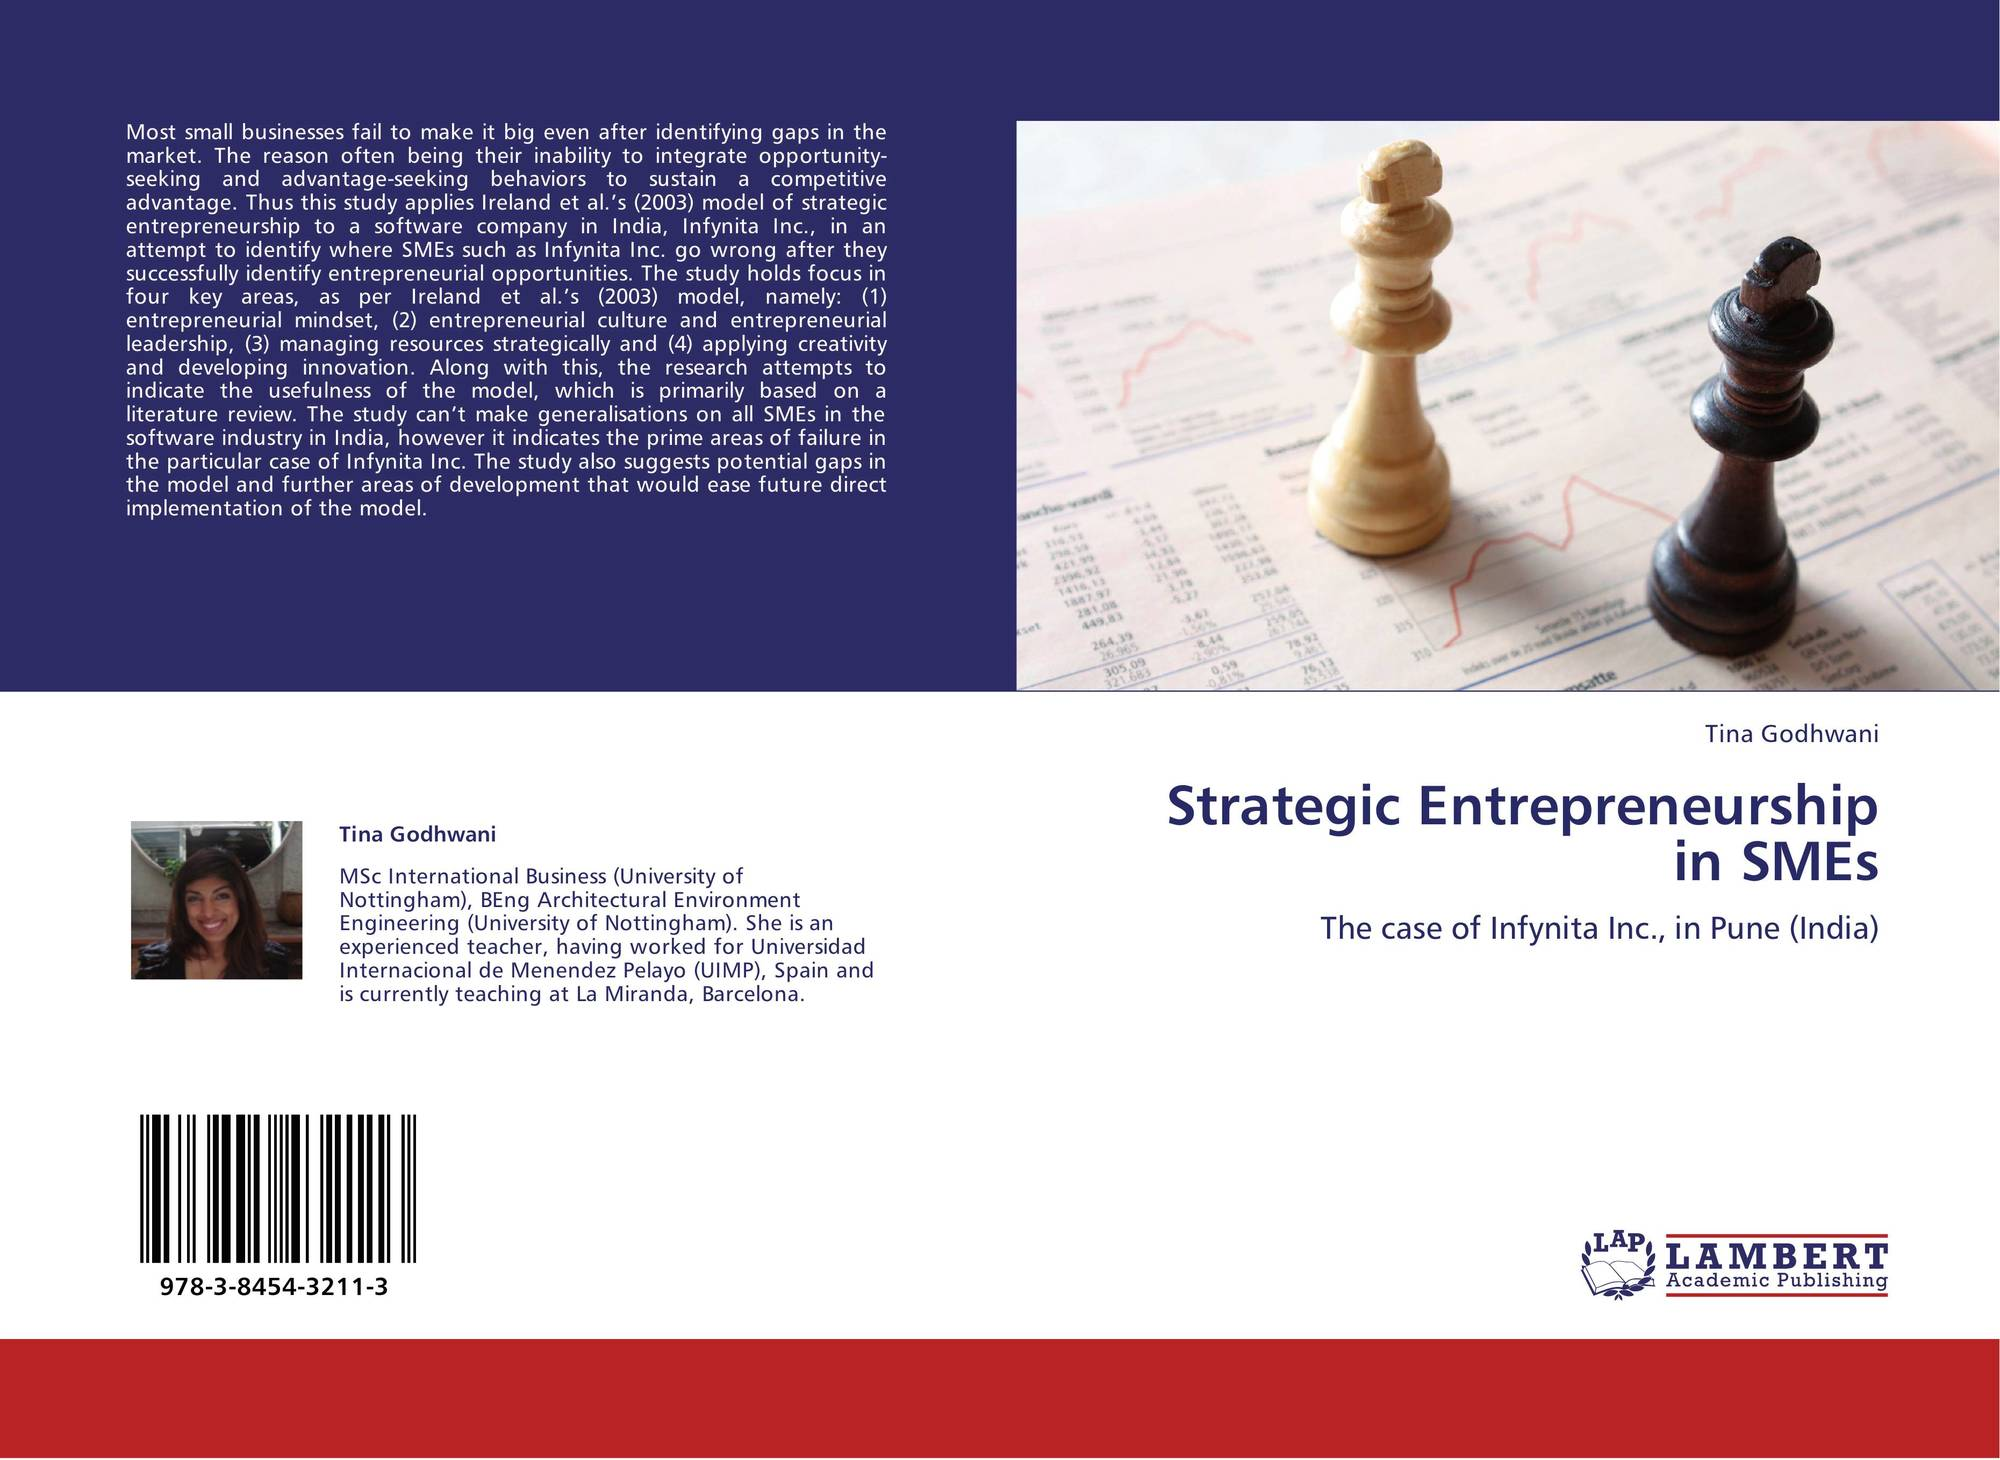 strategies for smes in india This case study aims to know various innovative marketing practices at smes, and trends marketing strategies marketing is an essential input for the success of smes producing wide range of products enterprises need to move from traditional marketing to modern marketing a few of the aspects adding up to the marketing problems of the smes in modern days are.